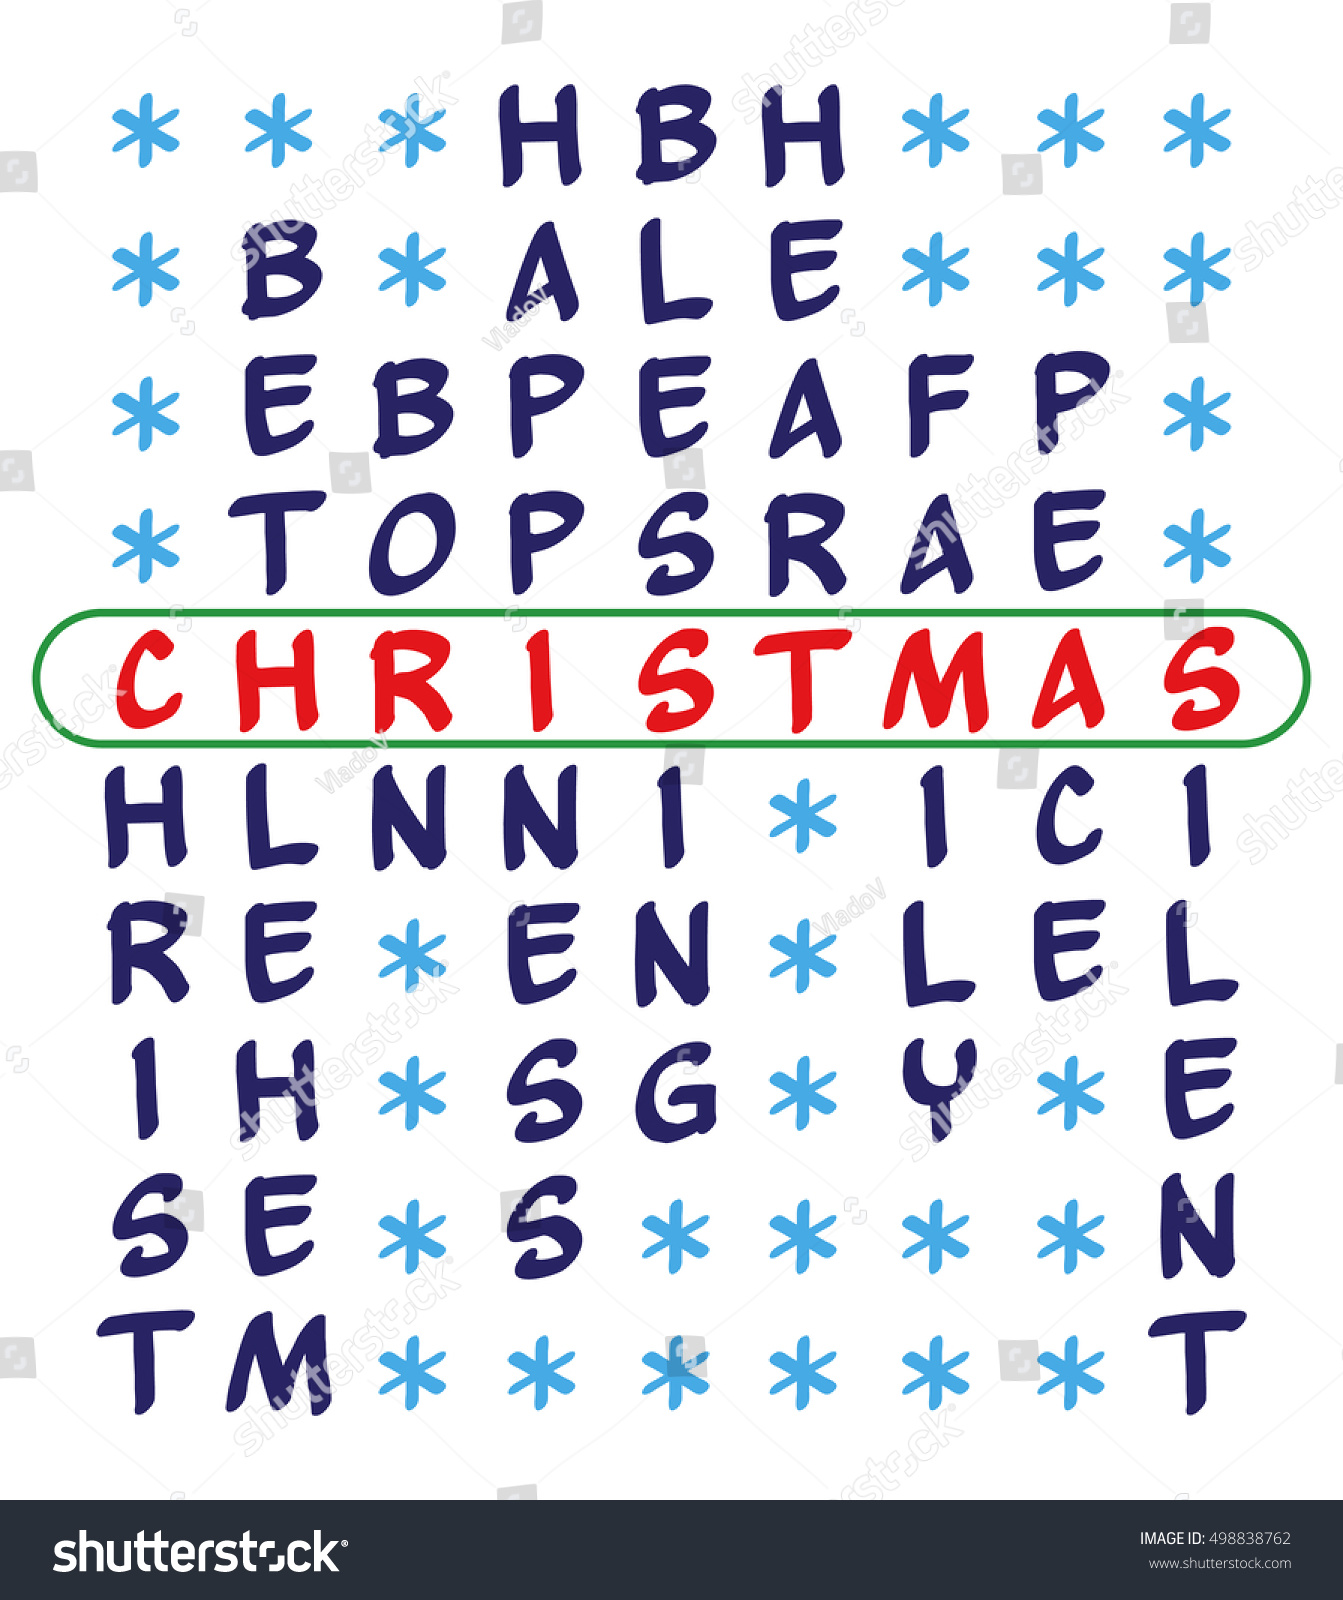 Christmas background crossword puzzle word christmas stock vector crossword puzzle for the word christmas and related words christ bethlehem biocorpaavc